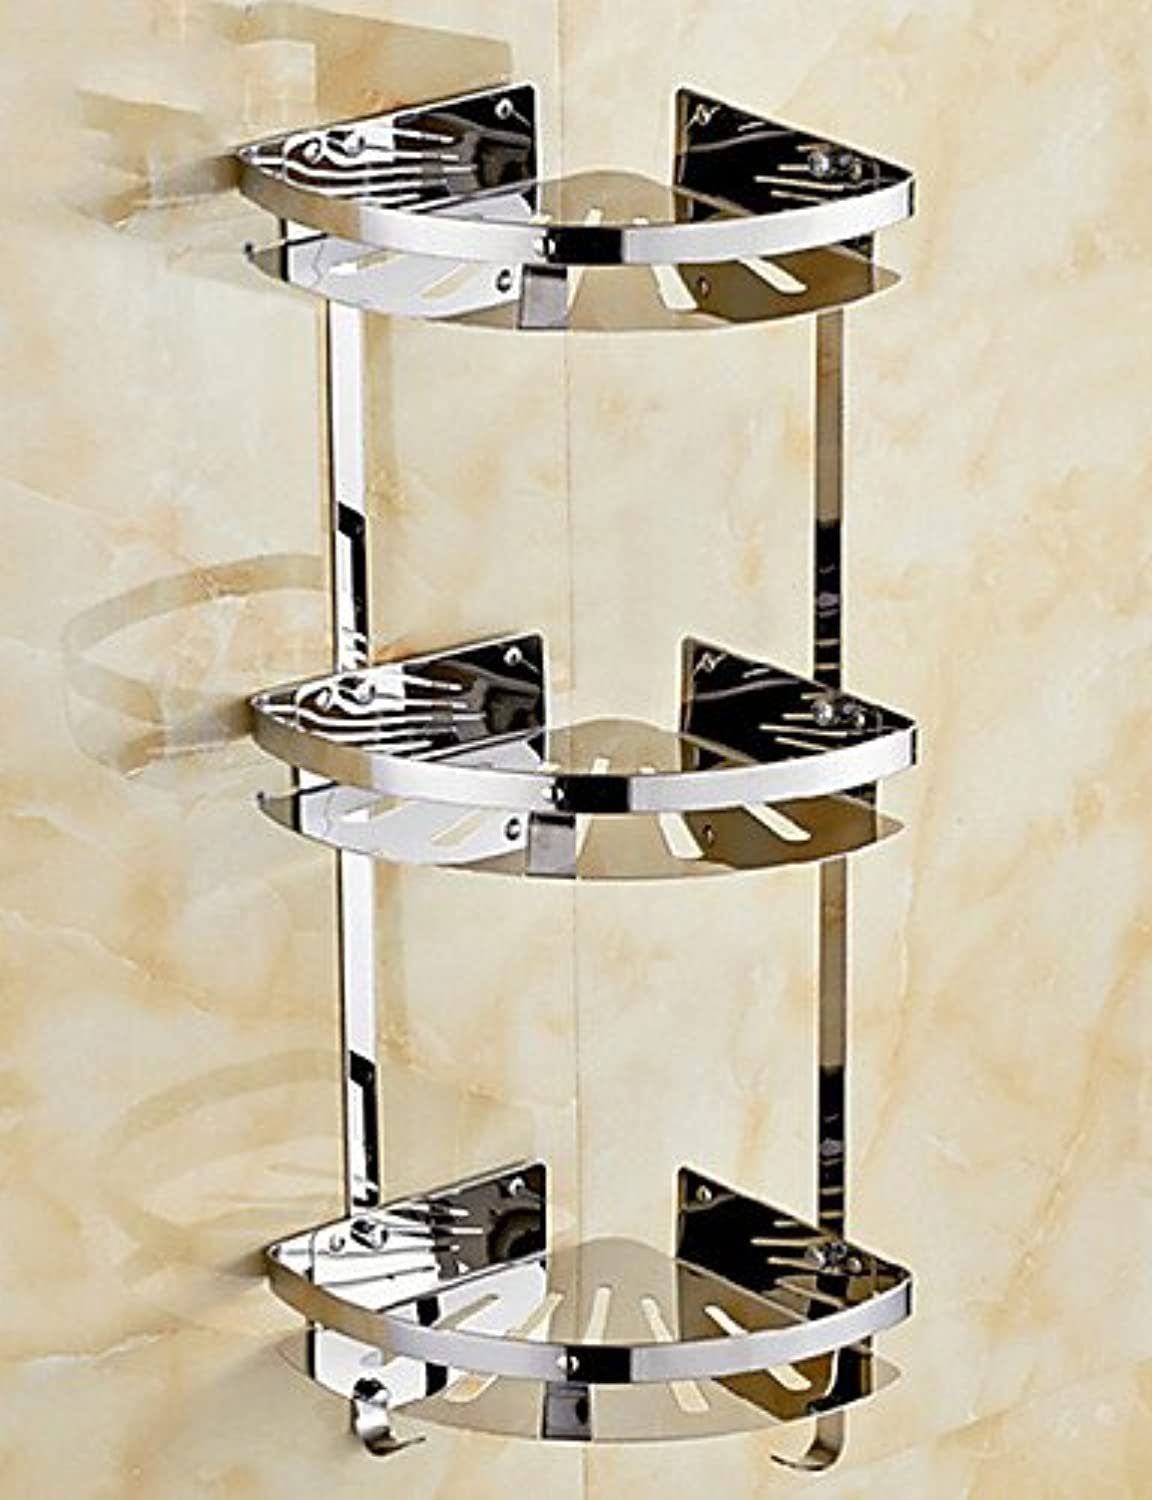 WYMBS Three-Deck Contemporary Space Aluminum Anodizing Wall Mounted Bathroom Shelf